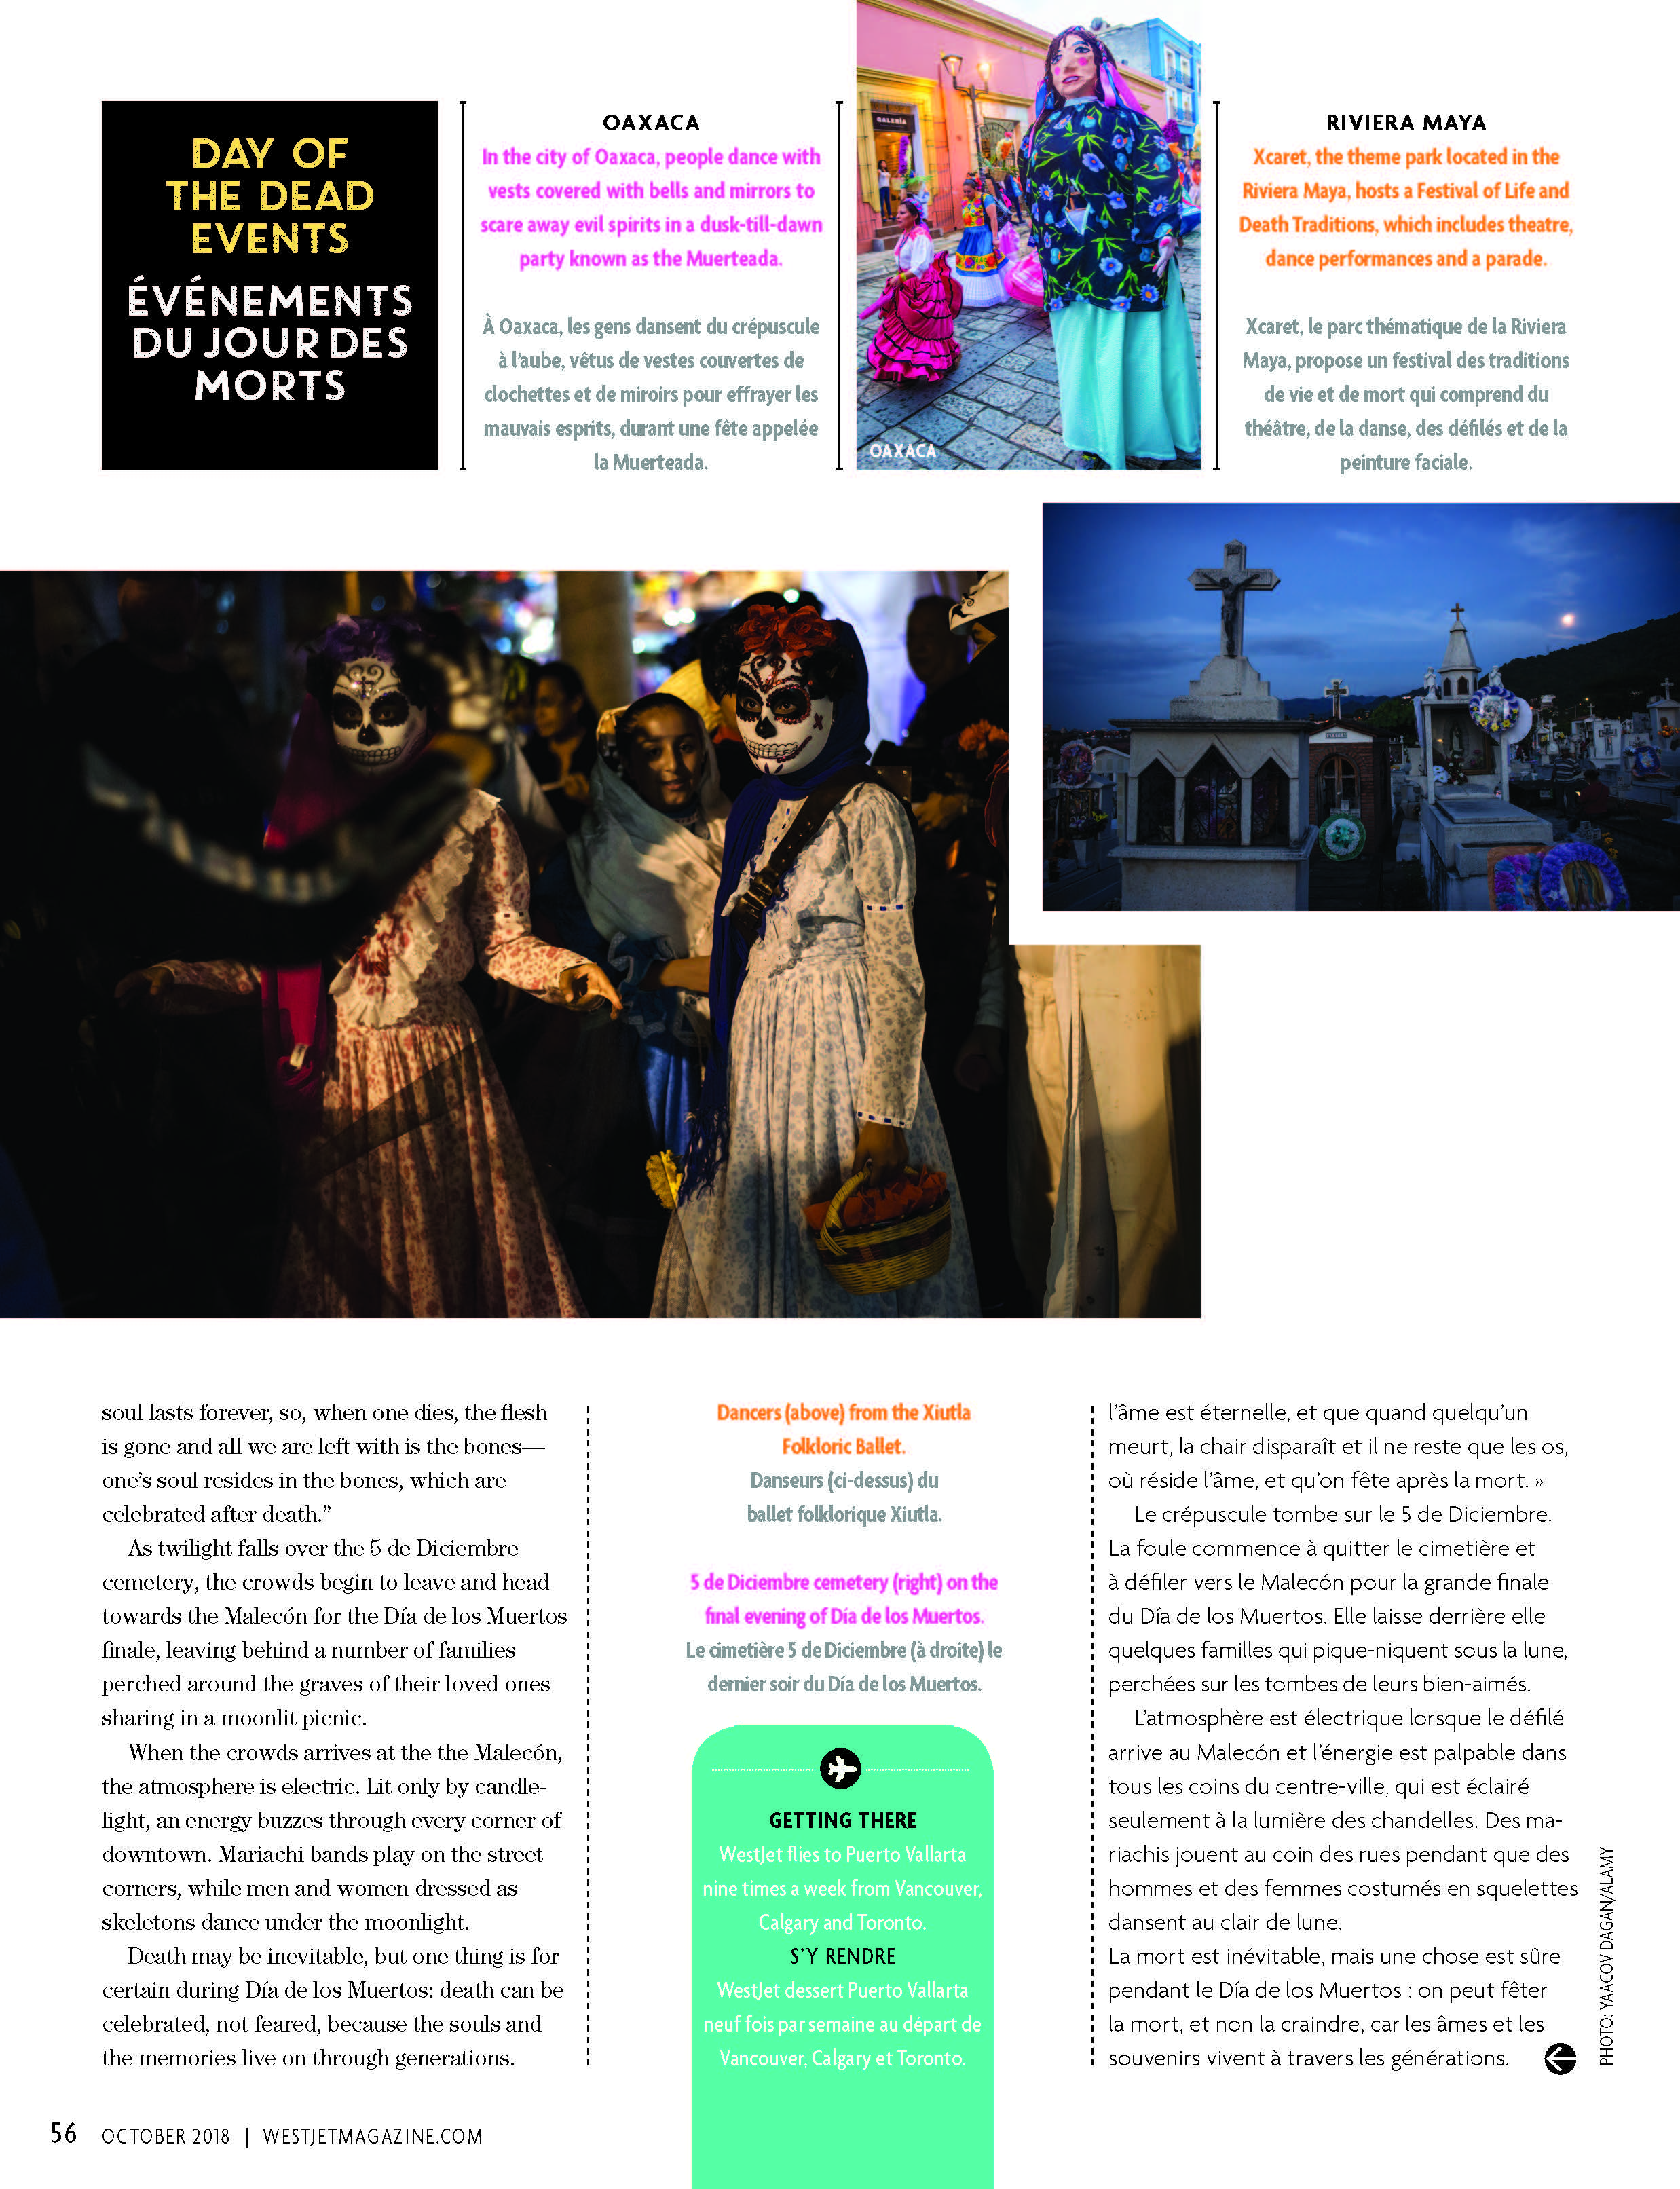 10-2018-Feature-Celebrating Life and Death in Puerto Vallarta_Page_5.jpg